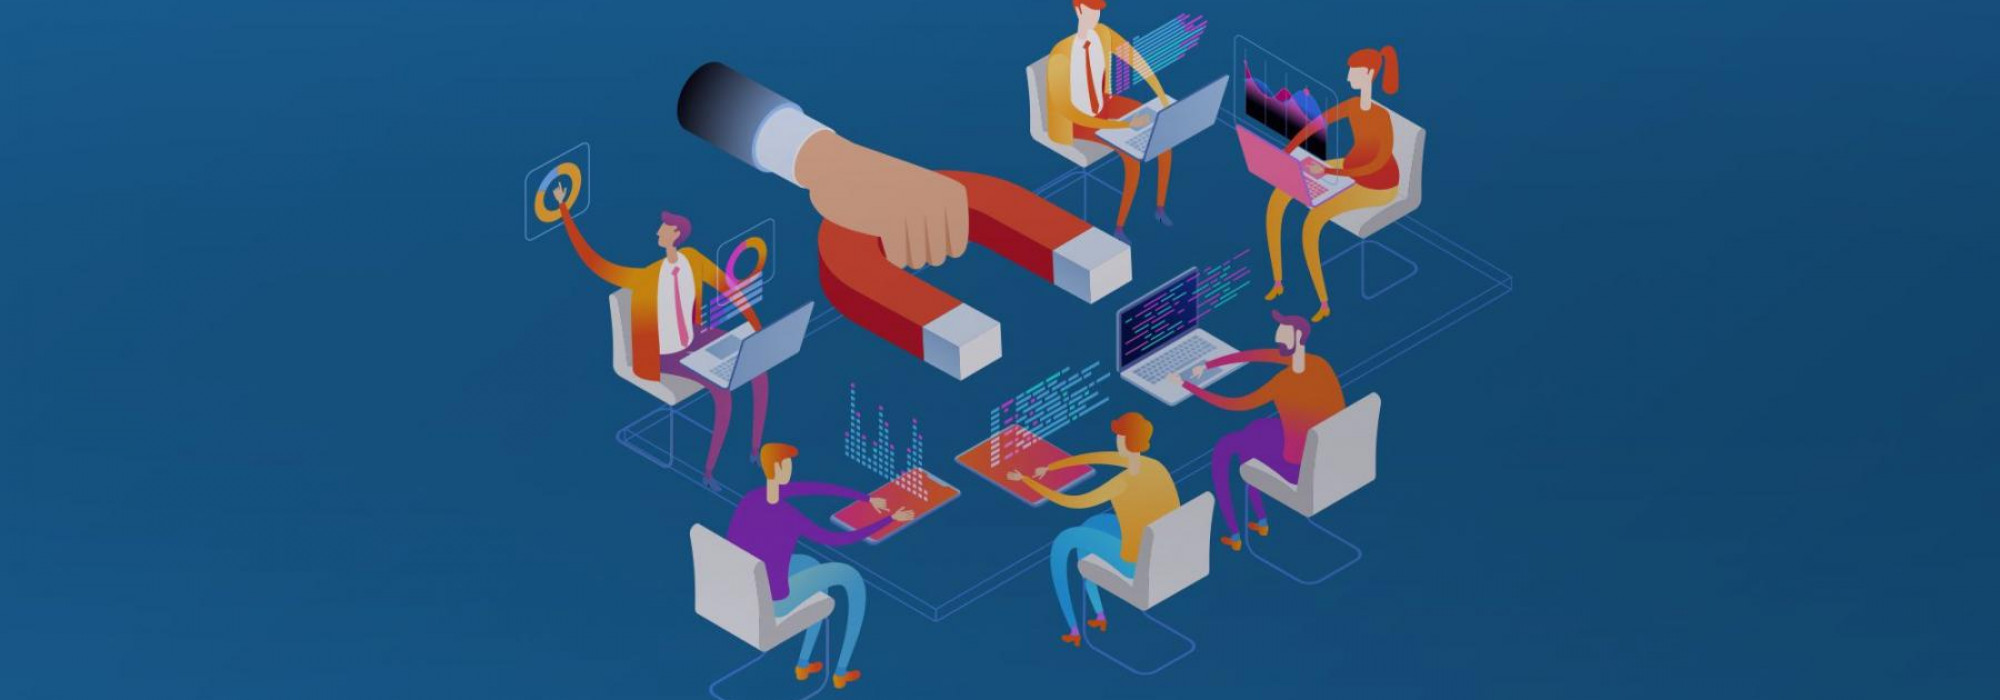 5 valuable tips to build and manage teams in a new era